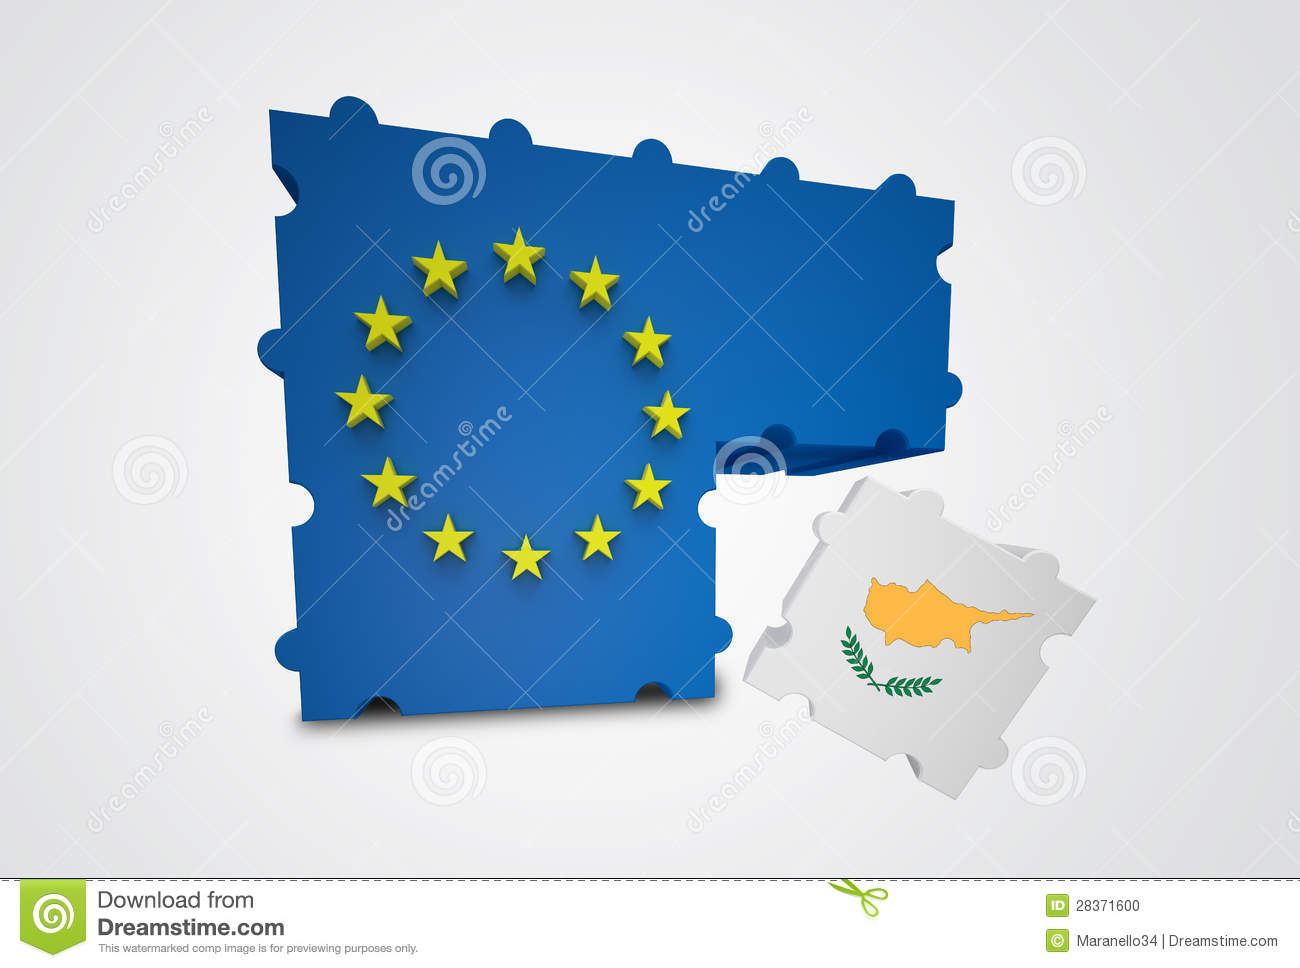 Cyprus removed from the European Union